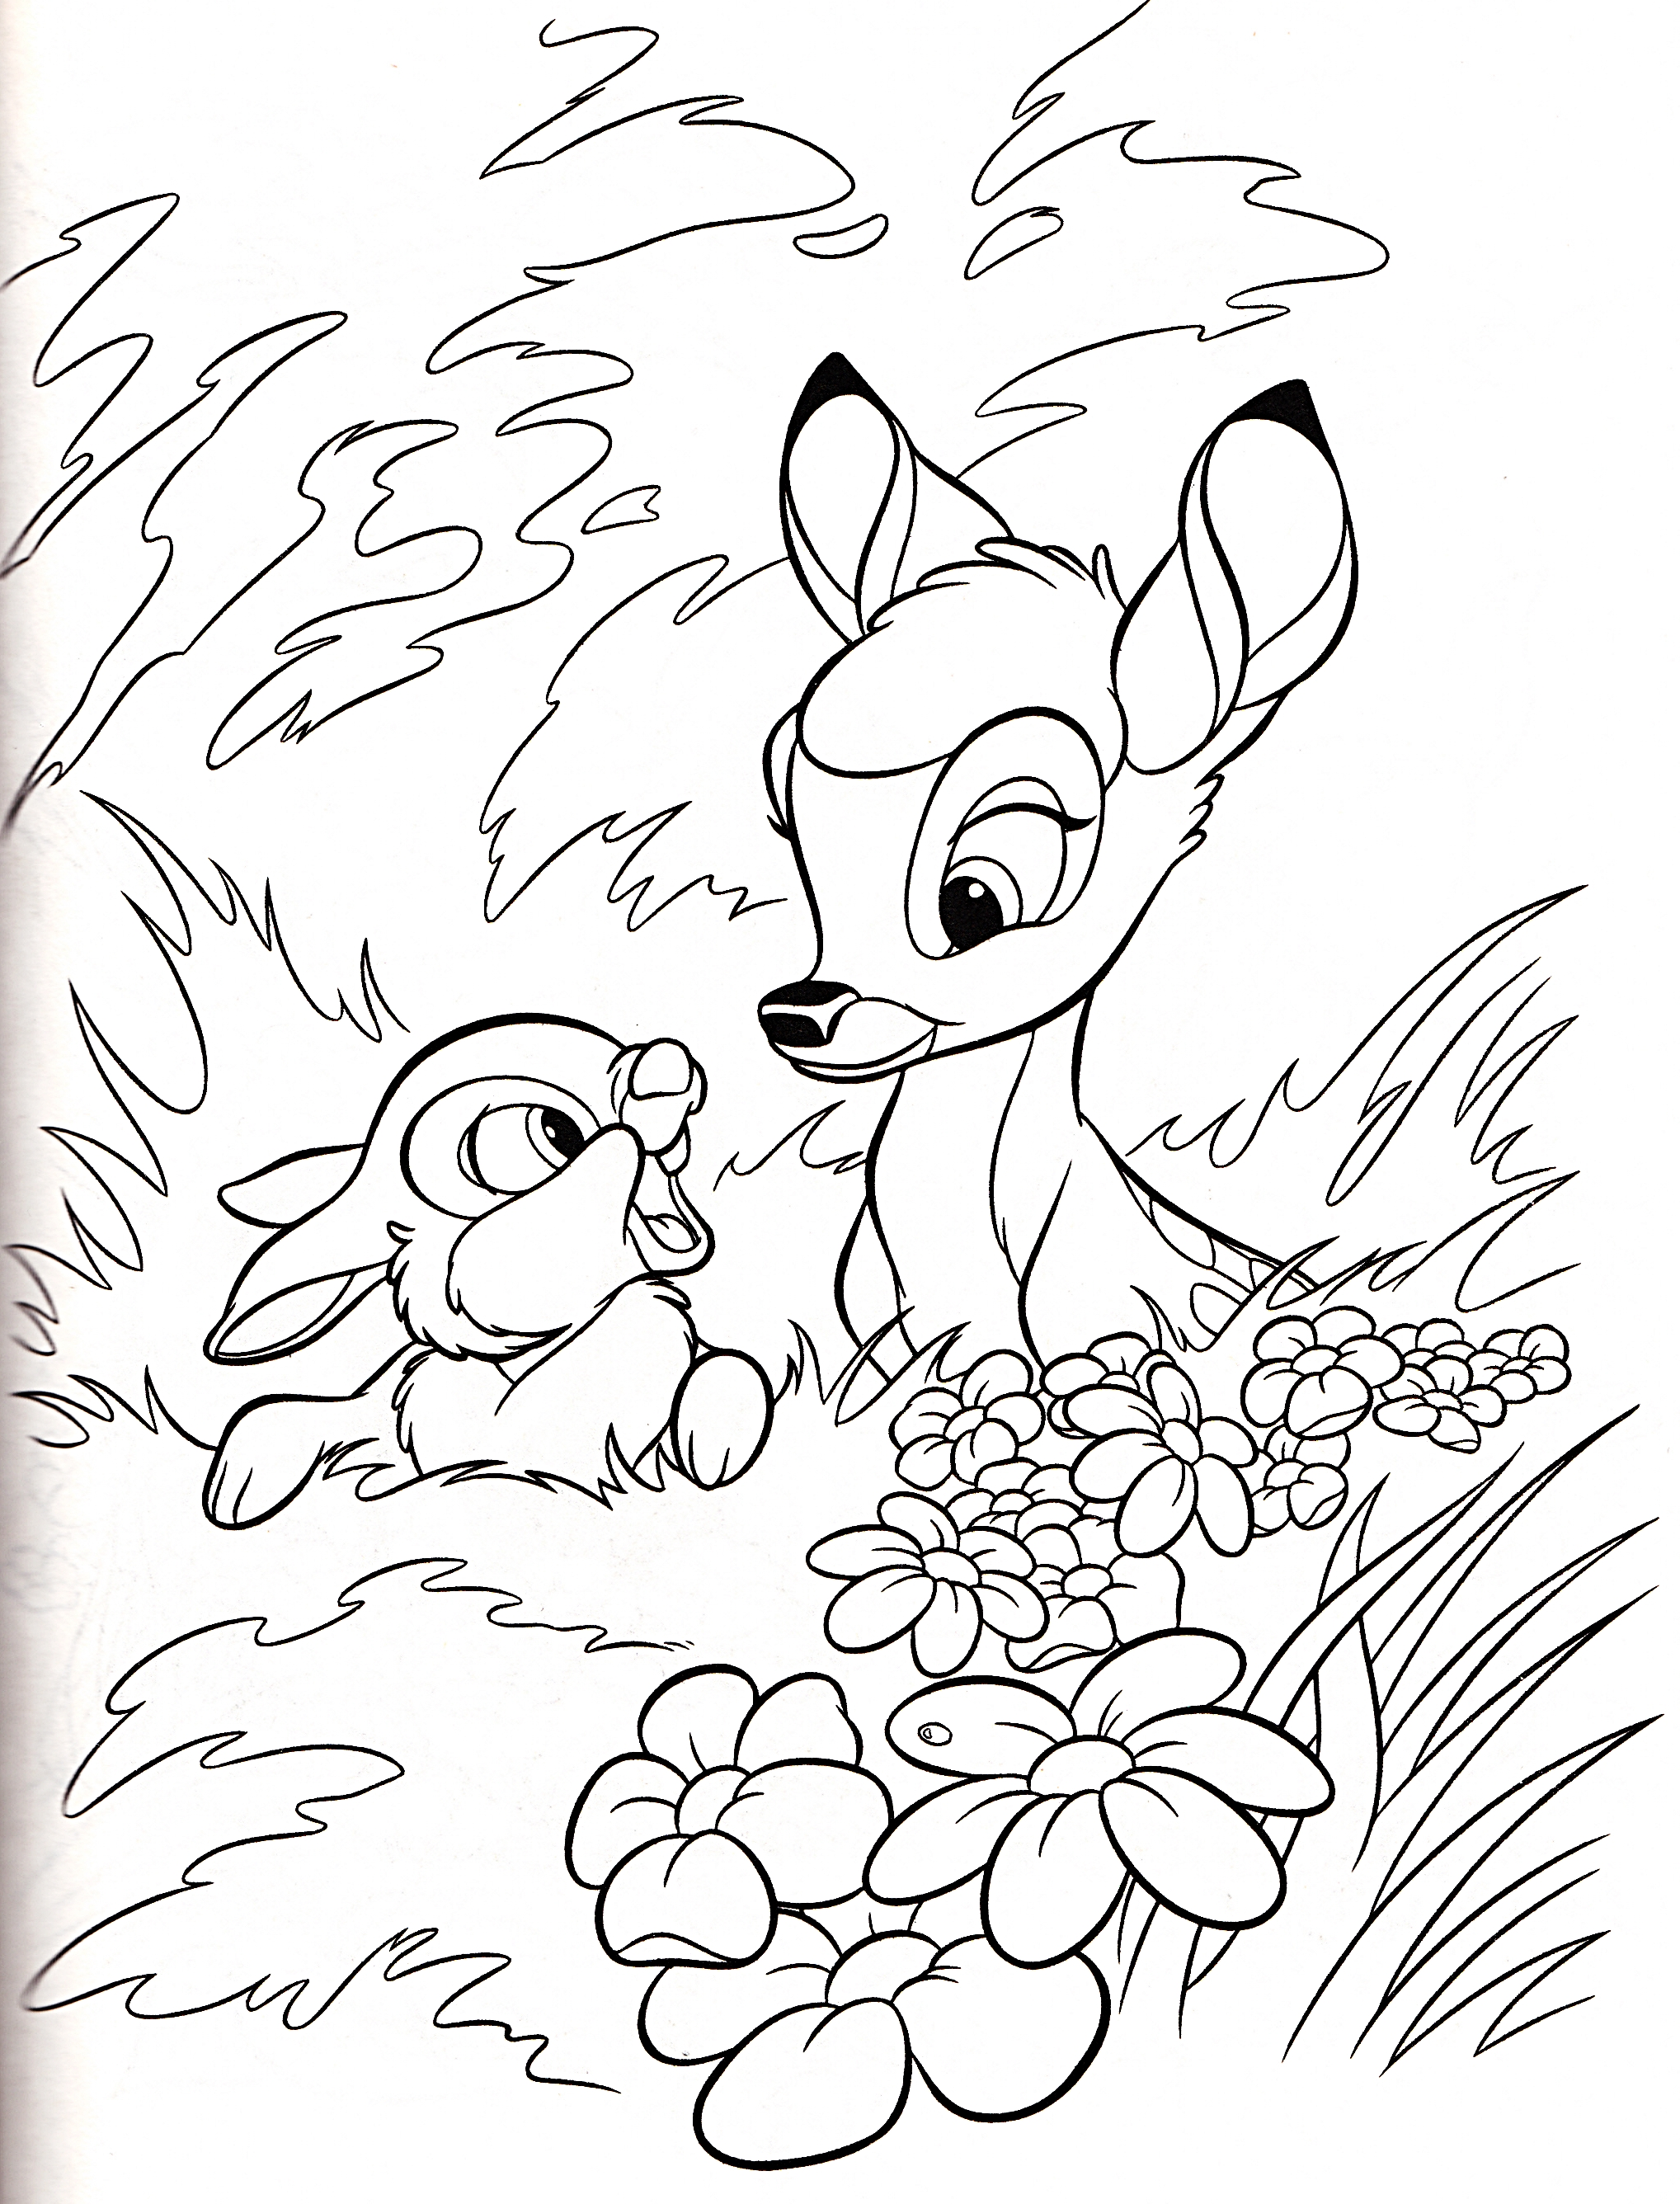 Walt disney coloring pages thumper bambi walt disney characters photo 36401007 fanpop - Coloriage disney ...